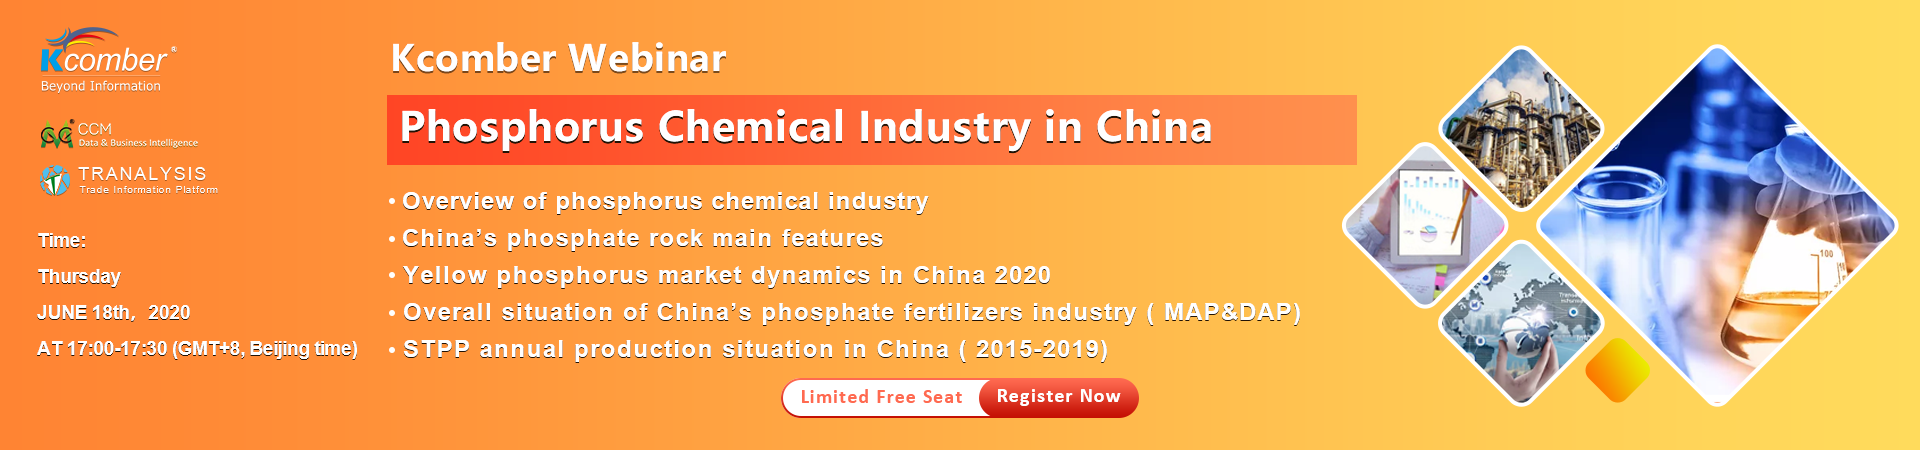 Phosphorus Chemical Industry in China